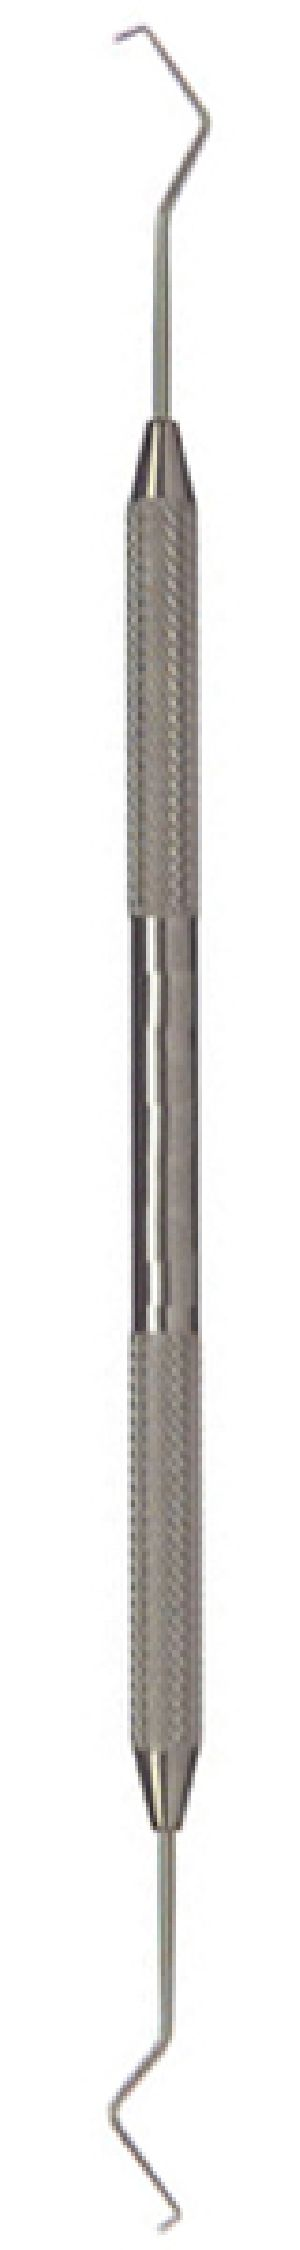 MI-77-101 Dental Probe Handle